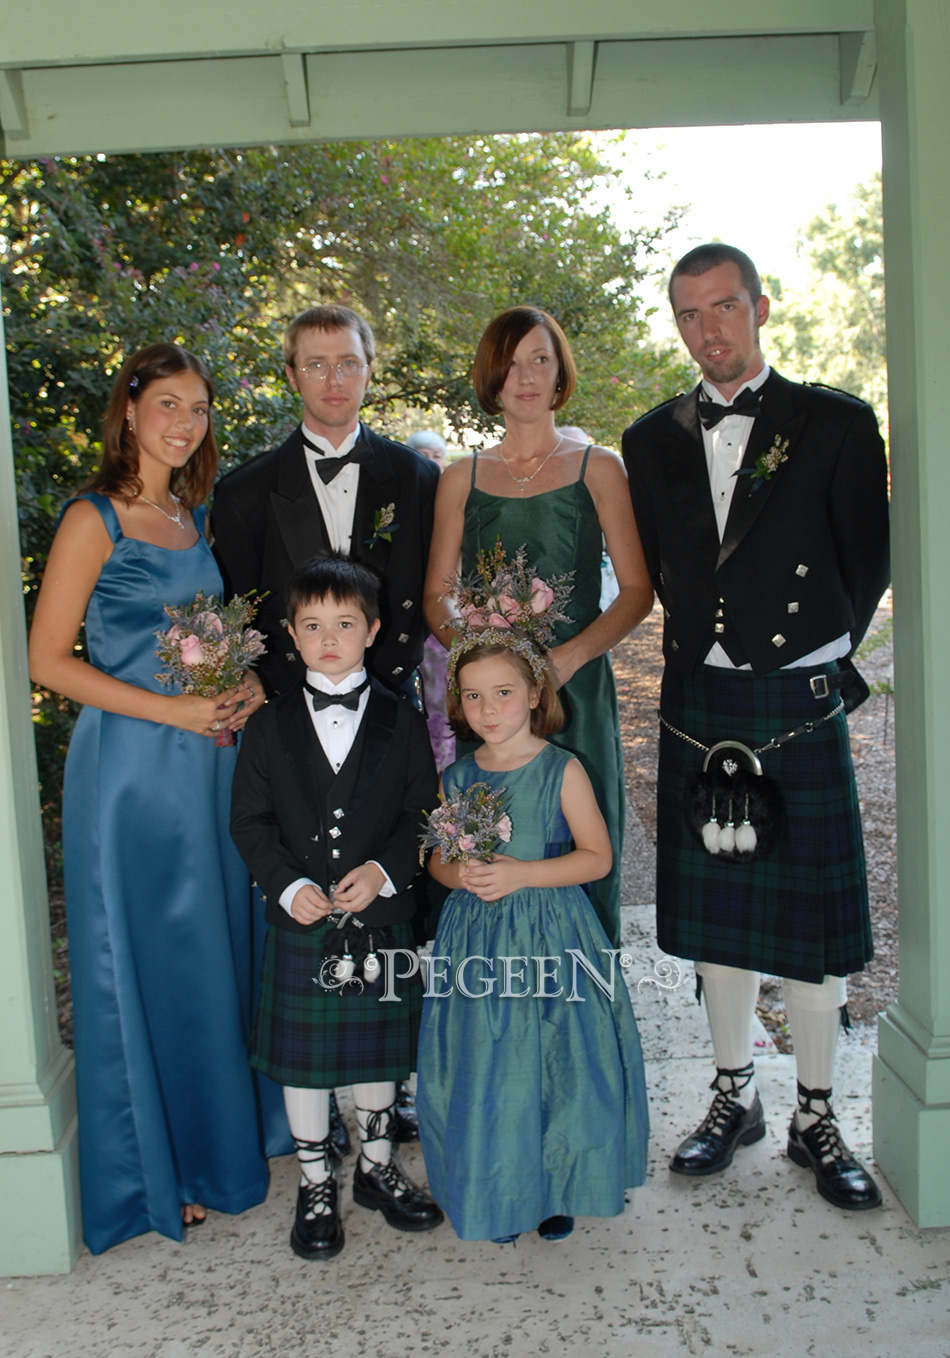 Scottish weddings hazel and plaid flower girl dress by Pegeen